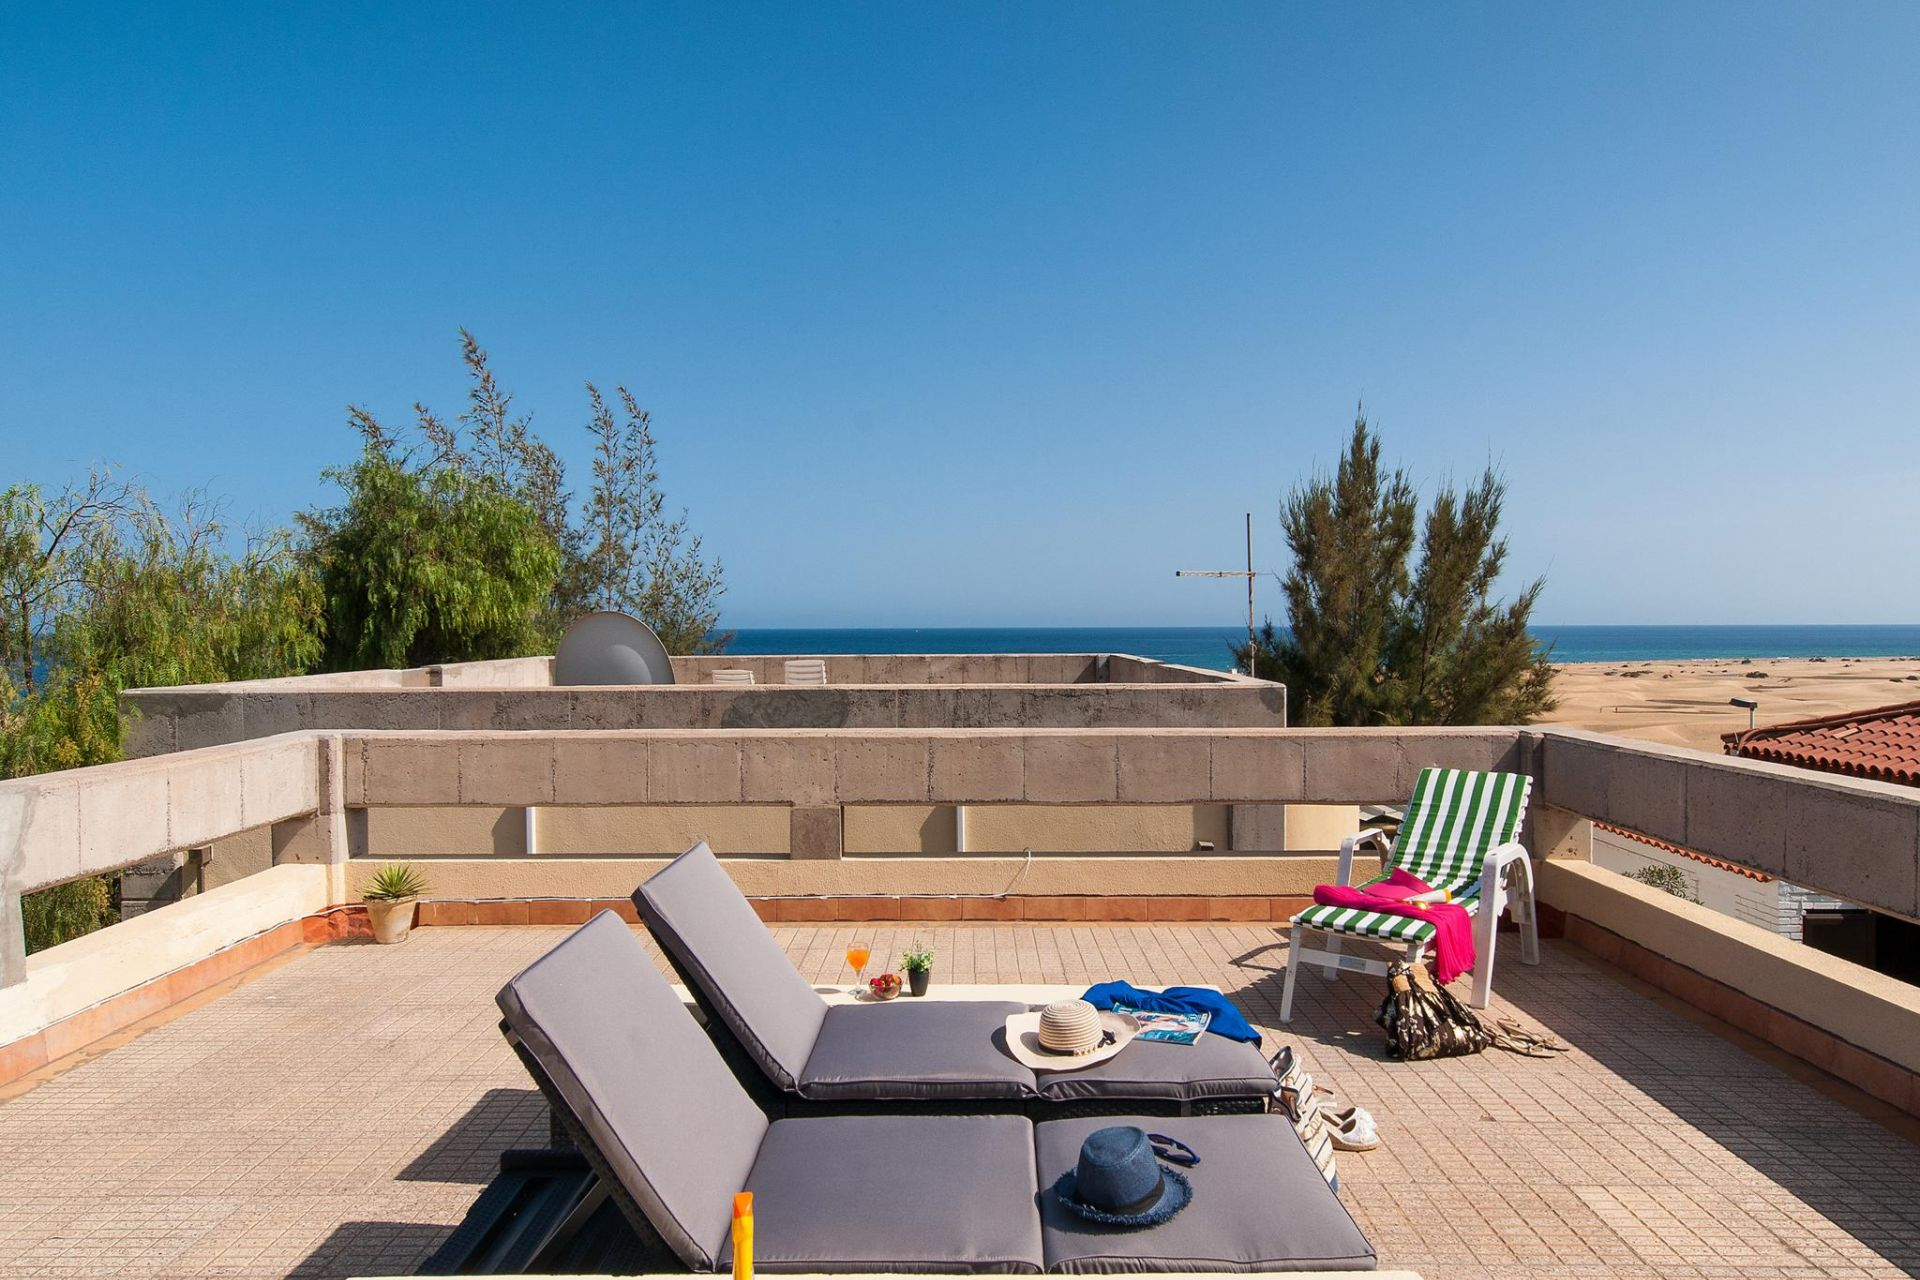 Self Catering Holiday Rental Casa Verde For 3 Persons In